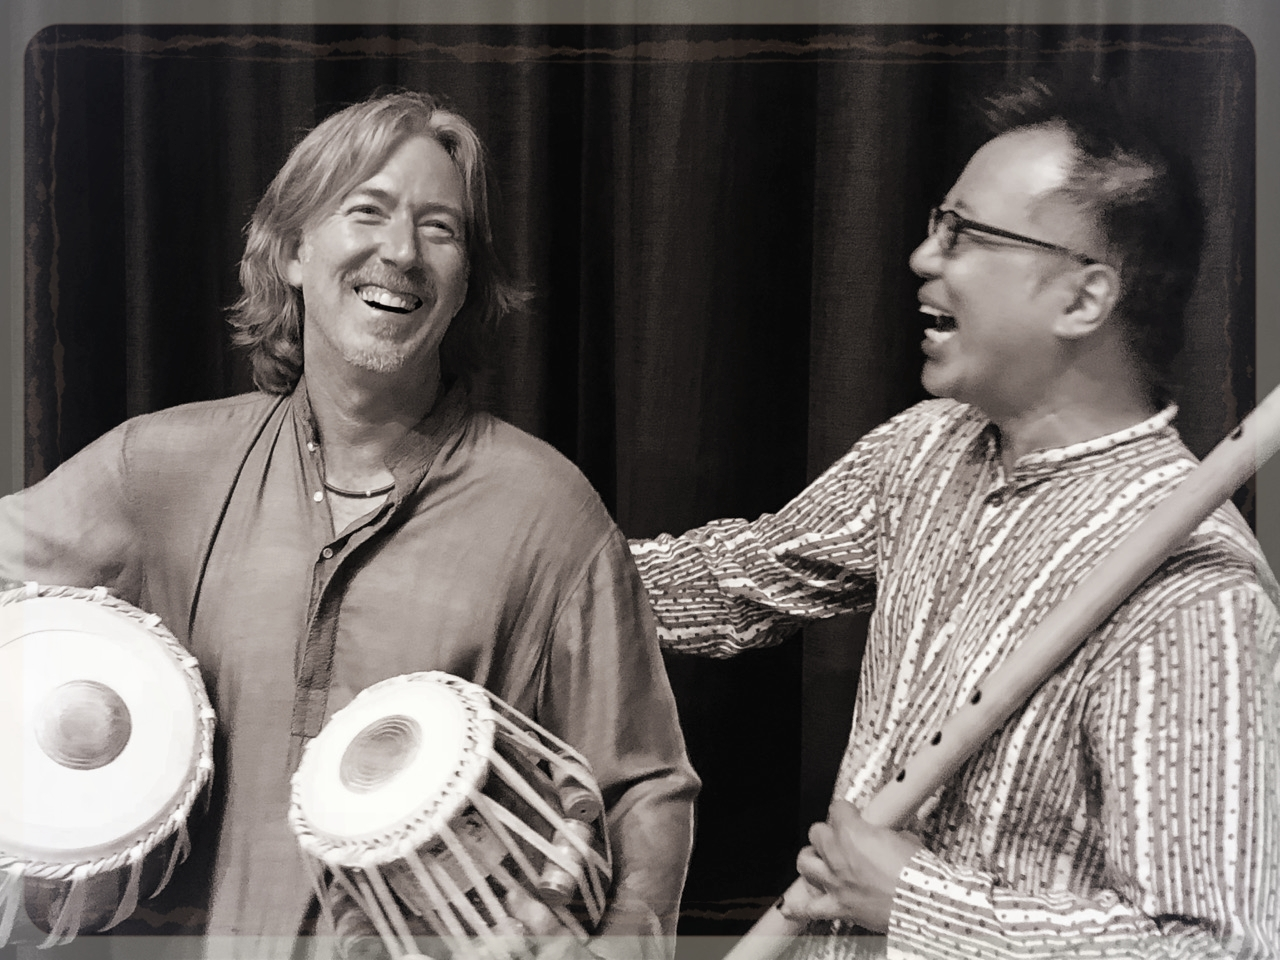 Taro Terahara & Ty Burhoe after a concert at the Canyon Theater in Boulder 2018